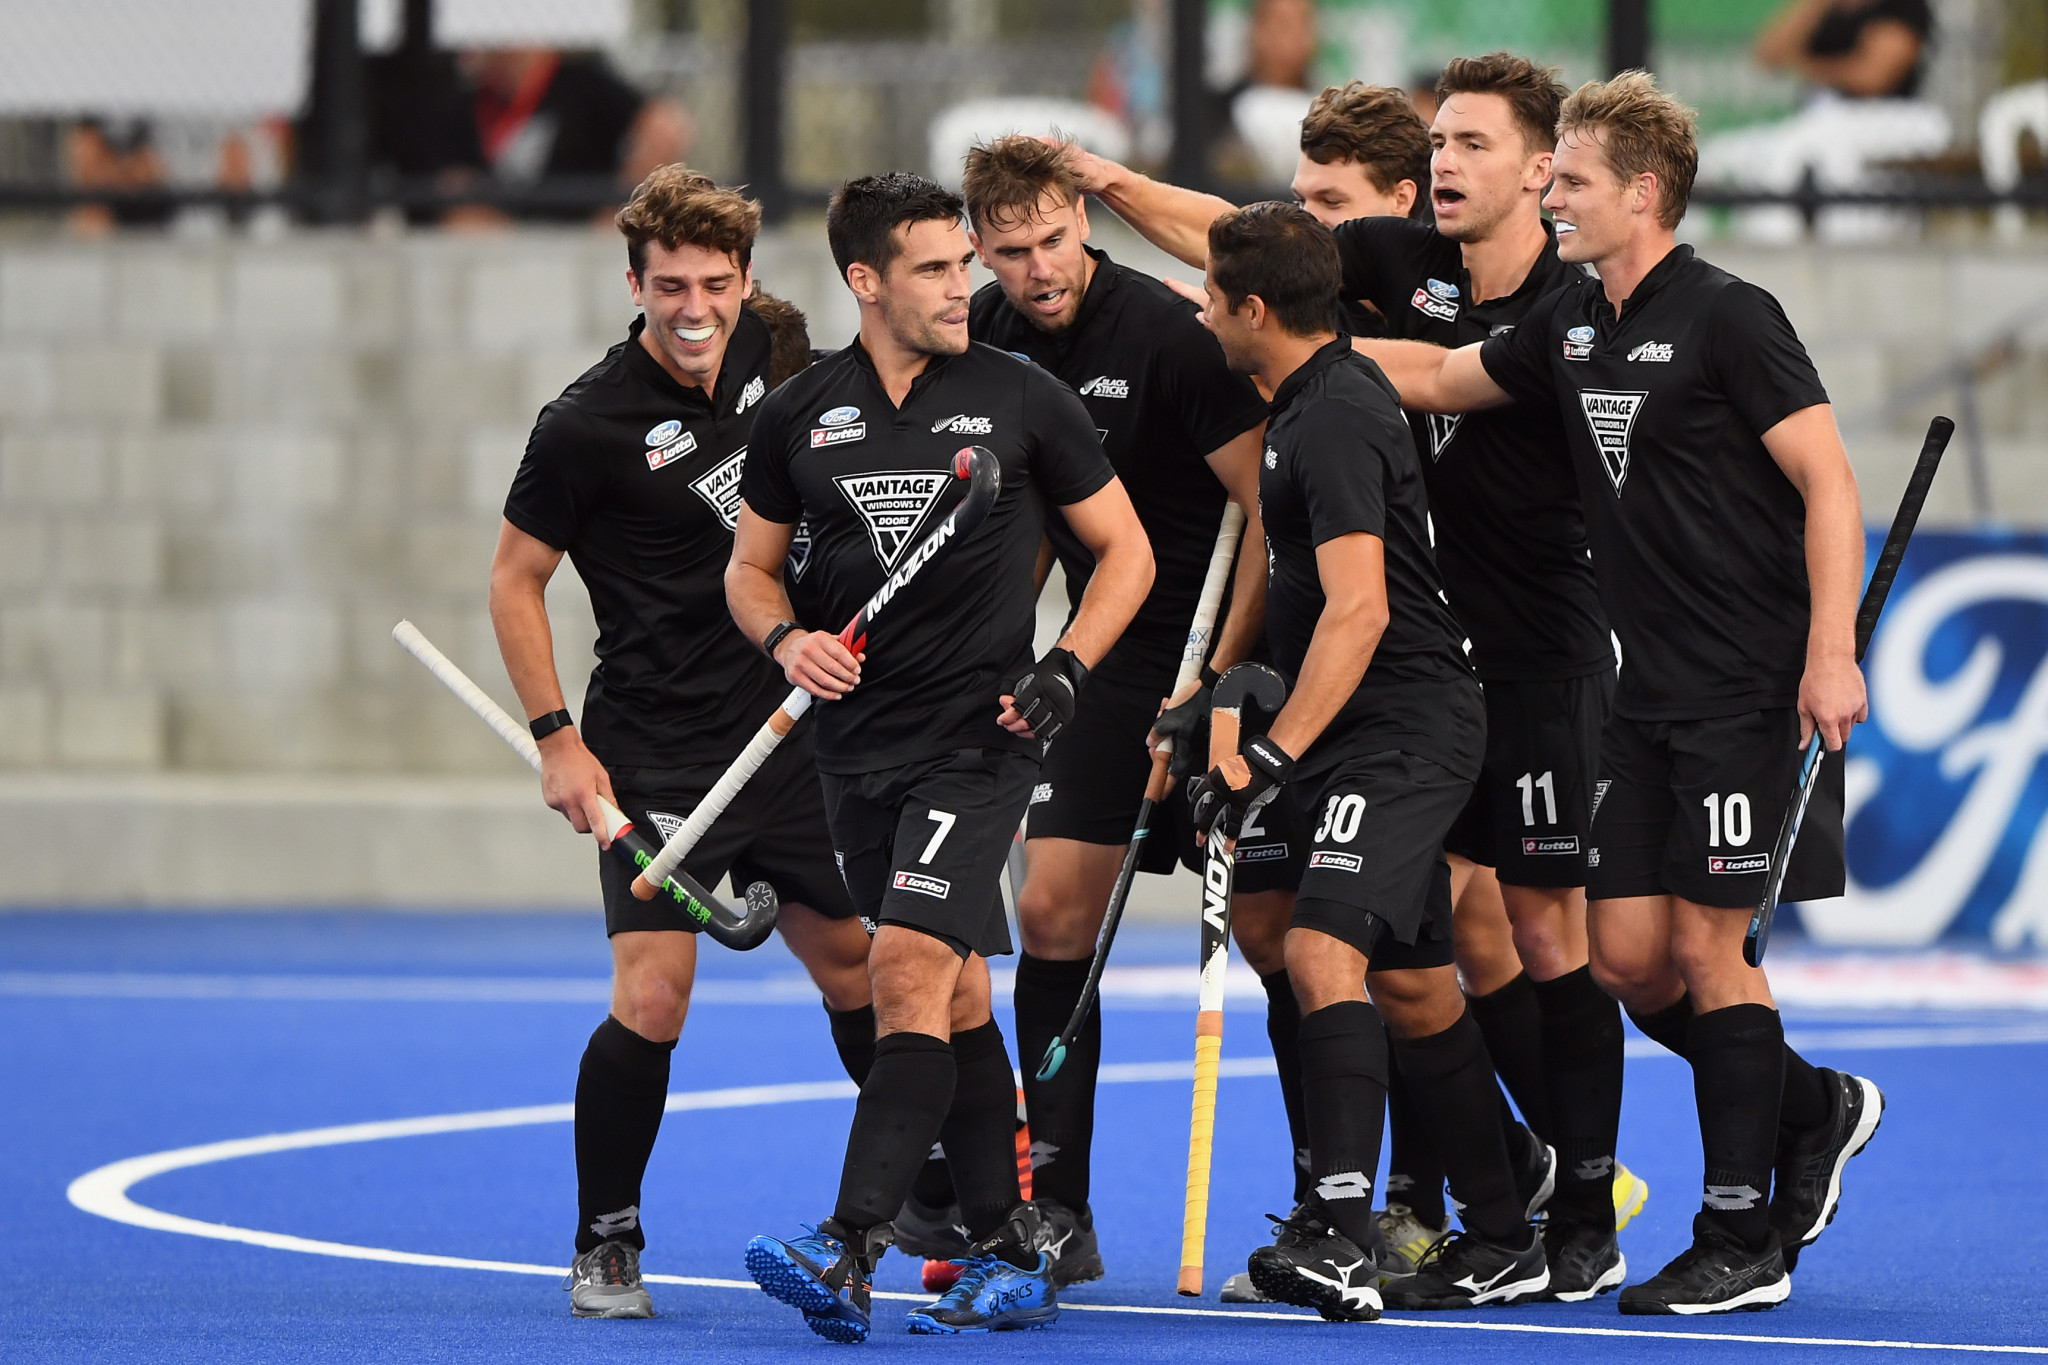 FIH Hockey Pro League matches went ahead in 2020 despite the COVID-19 pandemic ©Getty Images